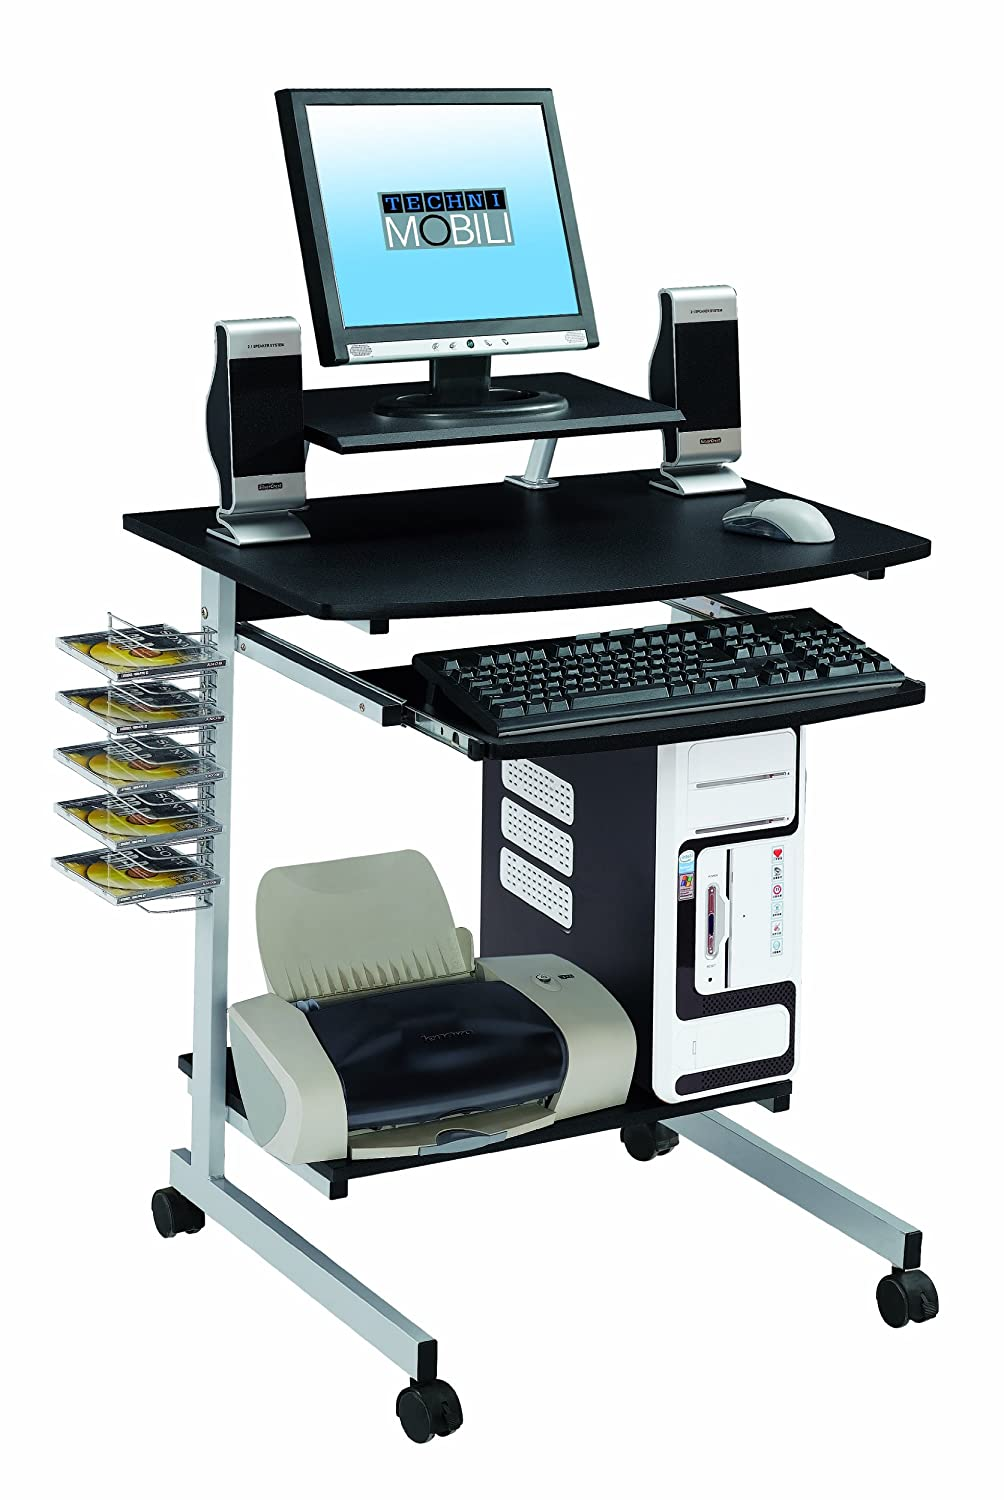 Staples Ergonomic Office Chairs Laptop Computer Desk Table w DVD Rack Printer Monitor ...